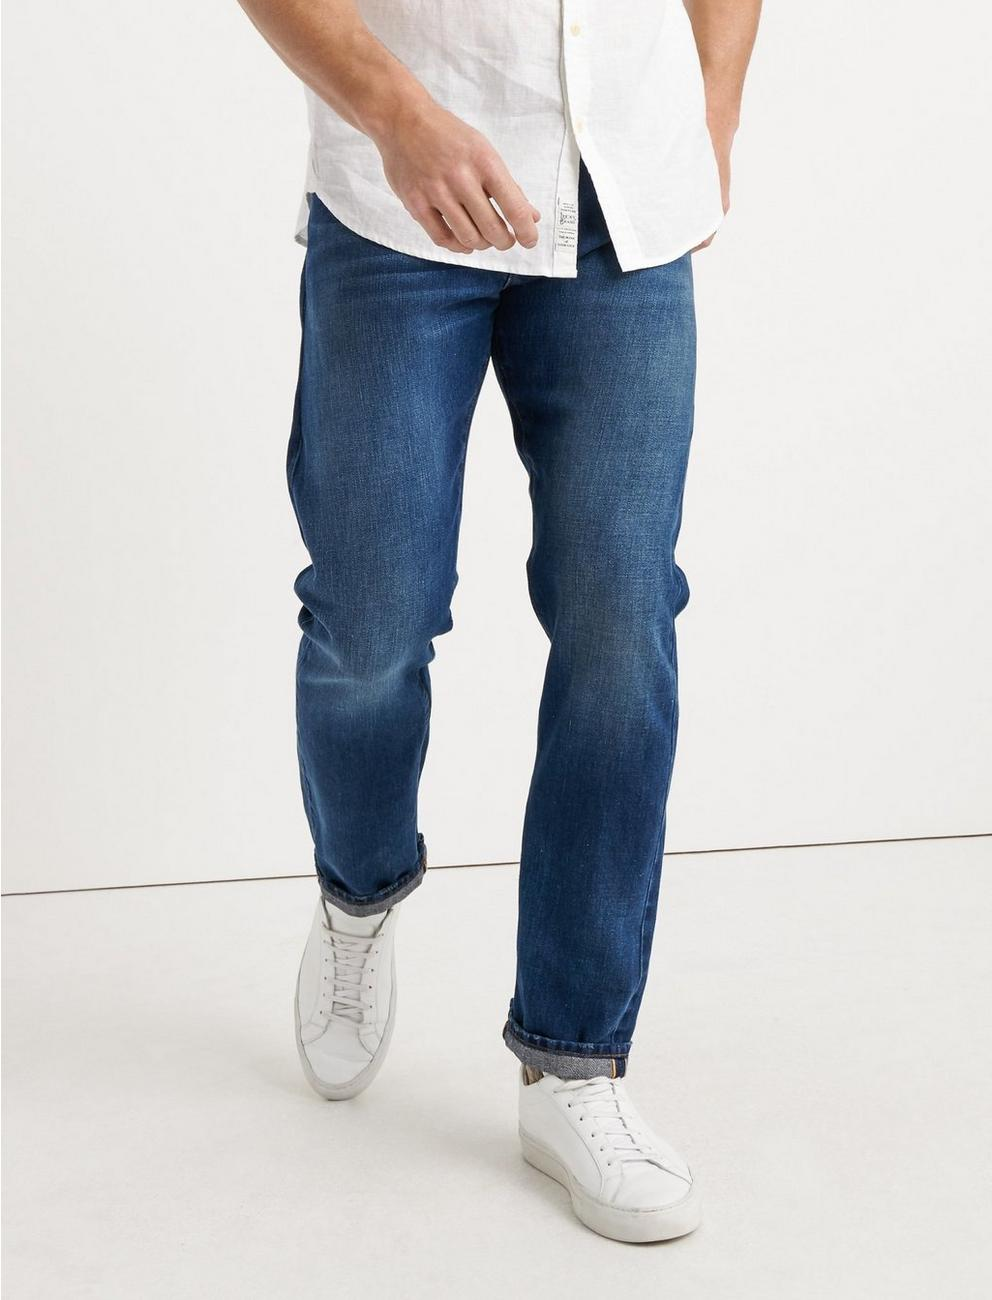 410 ATHLETIC SLIM SELVEDGE JEAN, ONE WASH